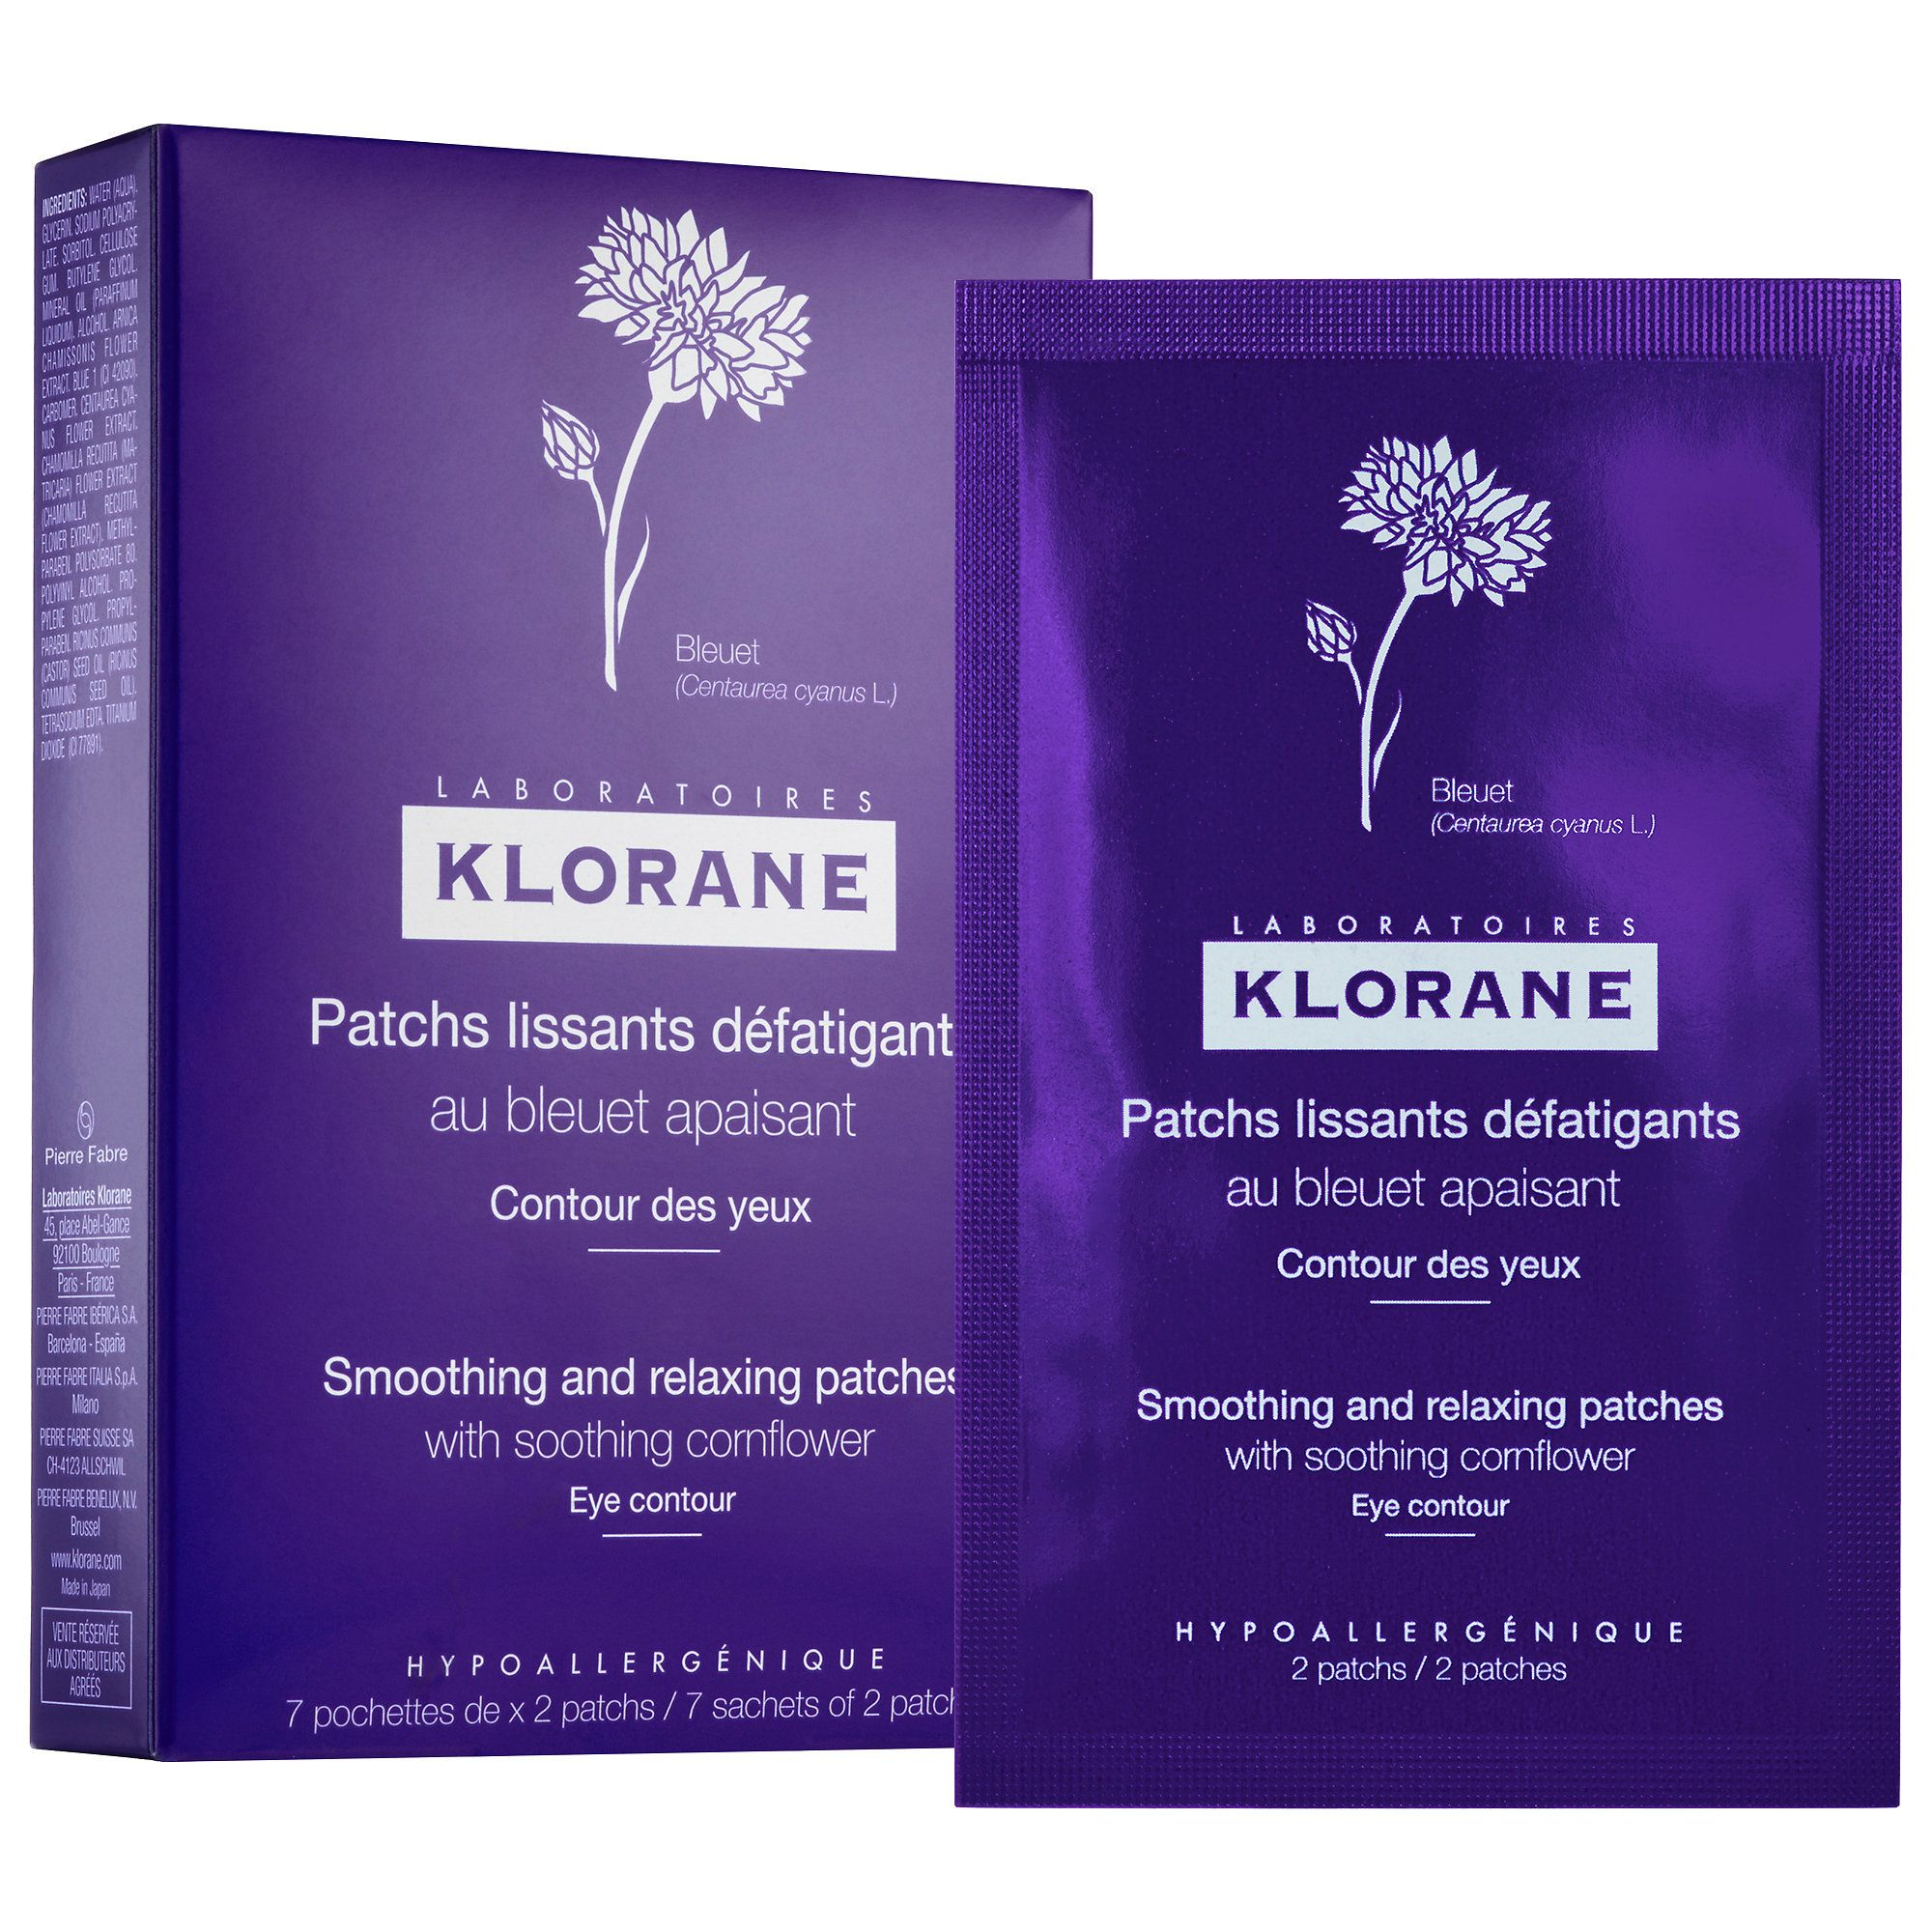 Smoothing And Relaxing Patches With Refreshing Cornflower To Moisturize And Brighten Tired Eyes Sagging Skin Remedies Beauty Products Drugstore Klorane